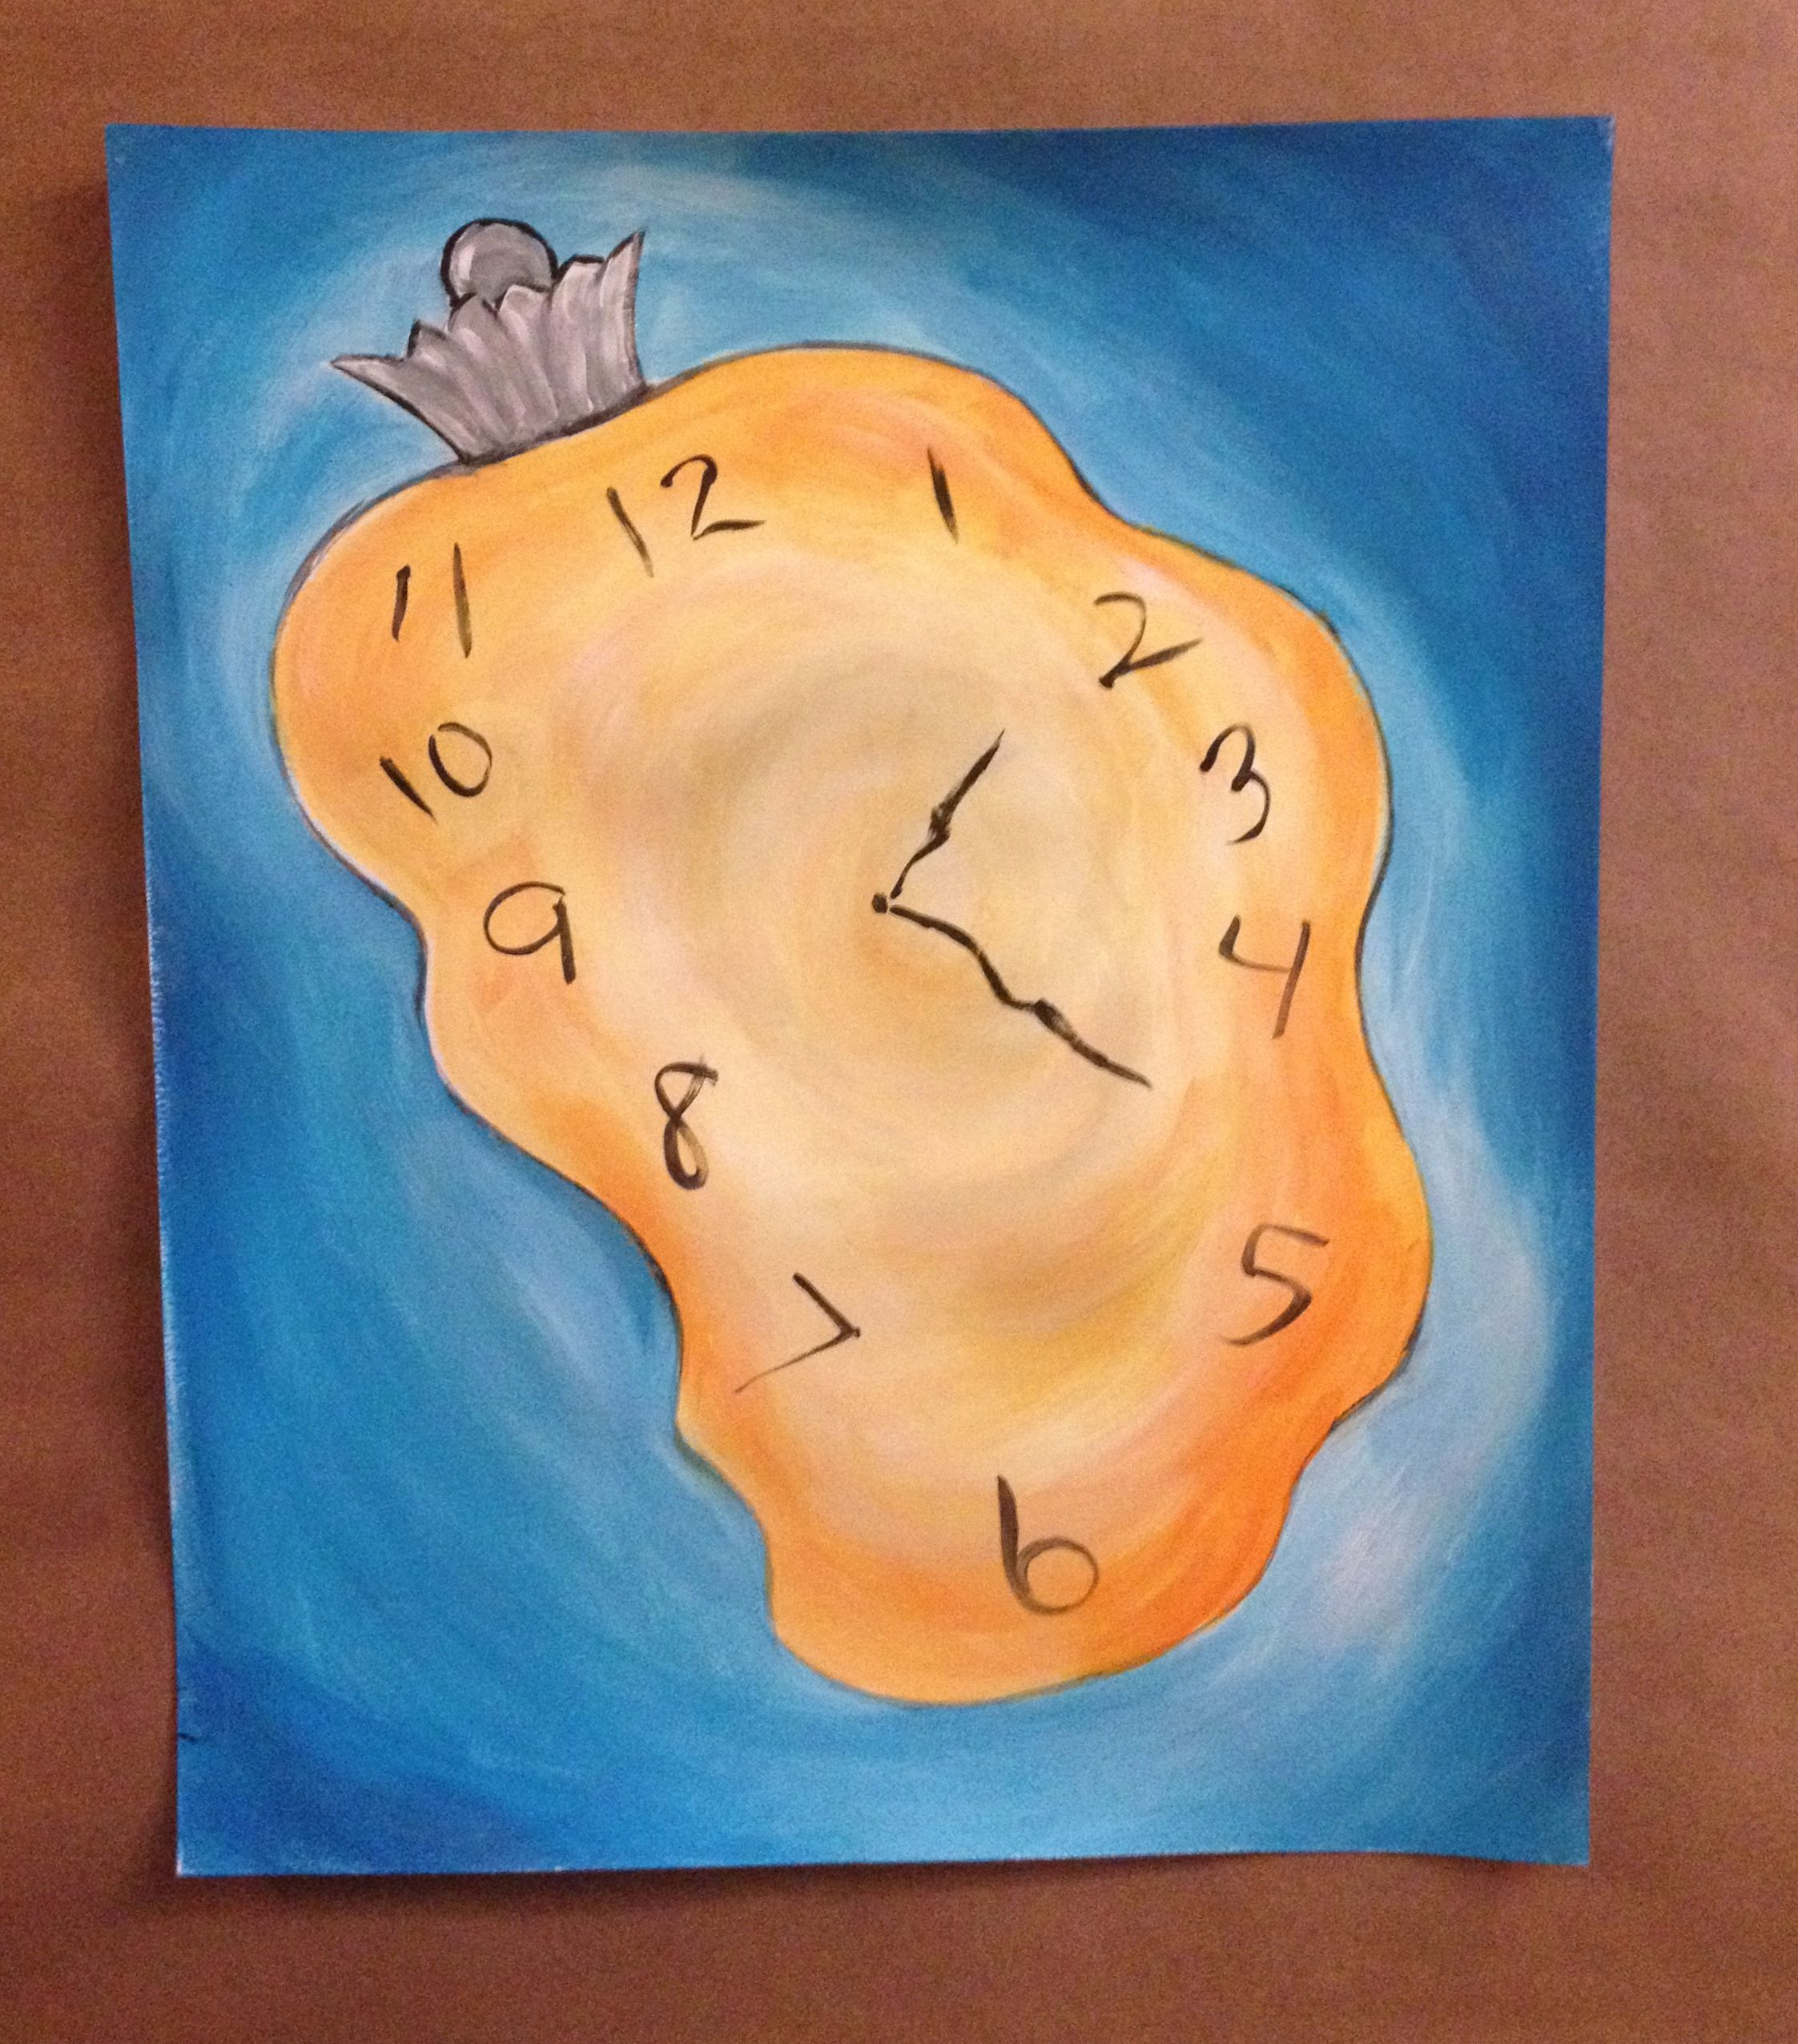 Dali S Melting Clock Creative Art Workshop For Kids With Images